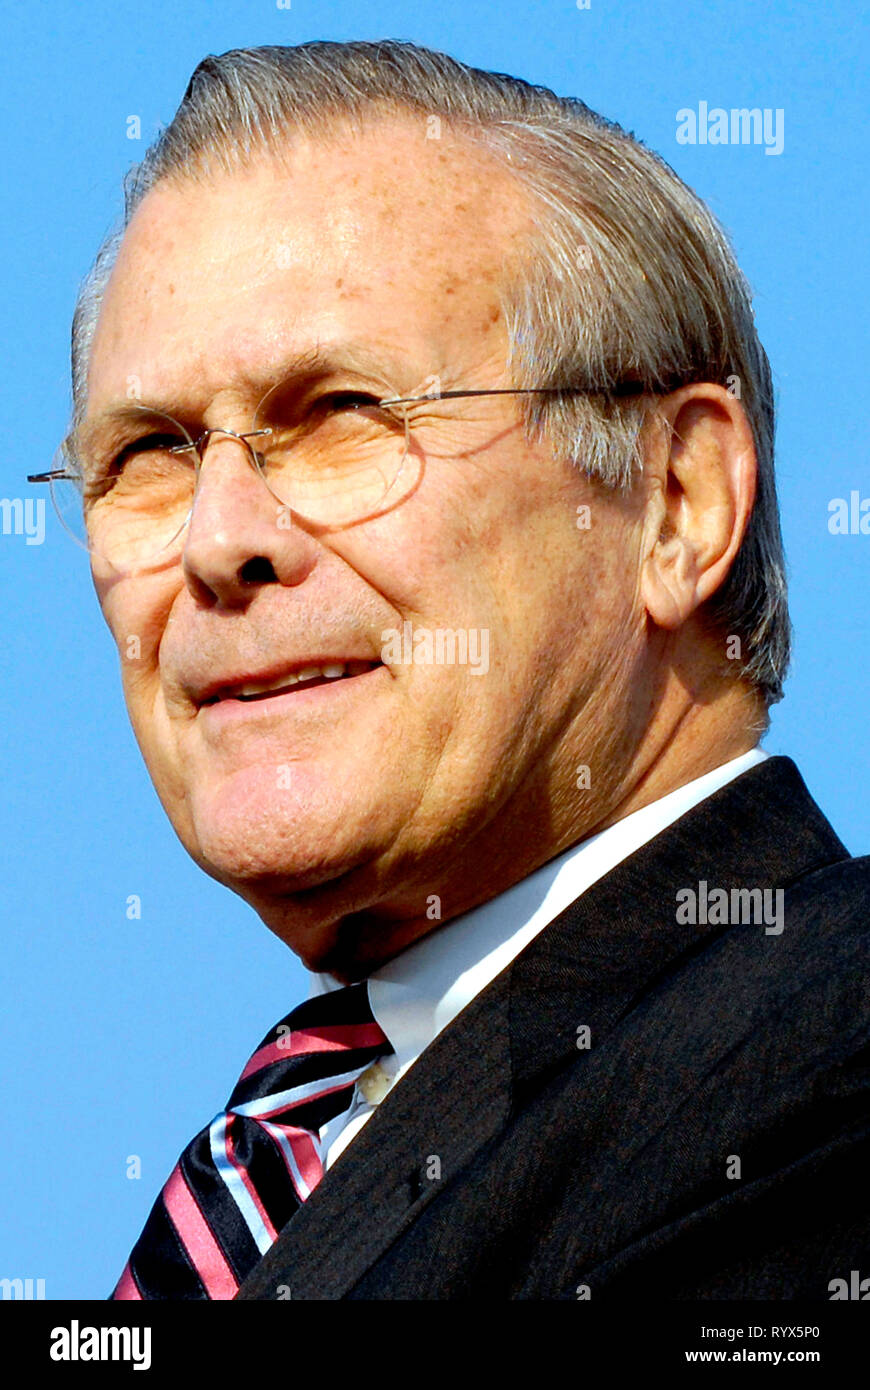 Donald Rumsfeld - *09.07.1932: American Politician and 21th United States Secretary of Defense from 2001 to 2006. - Stock Image